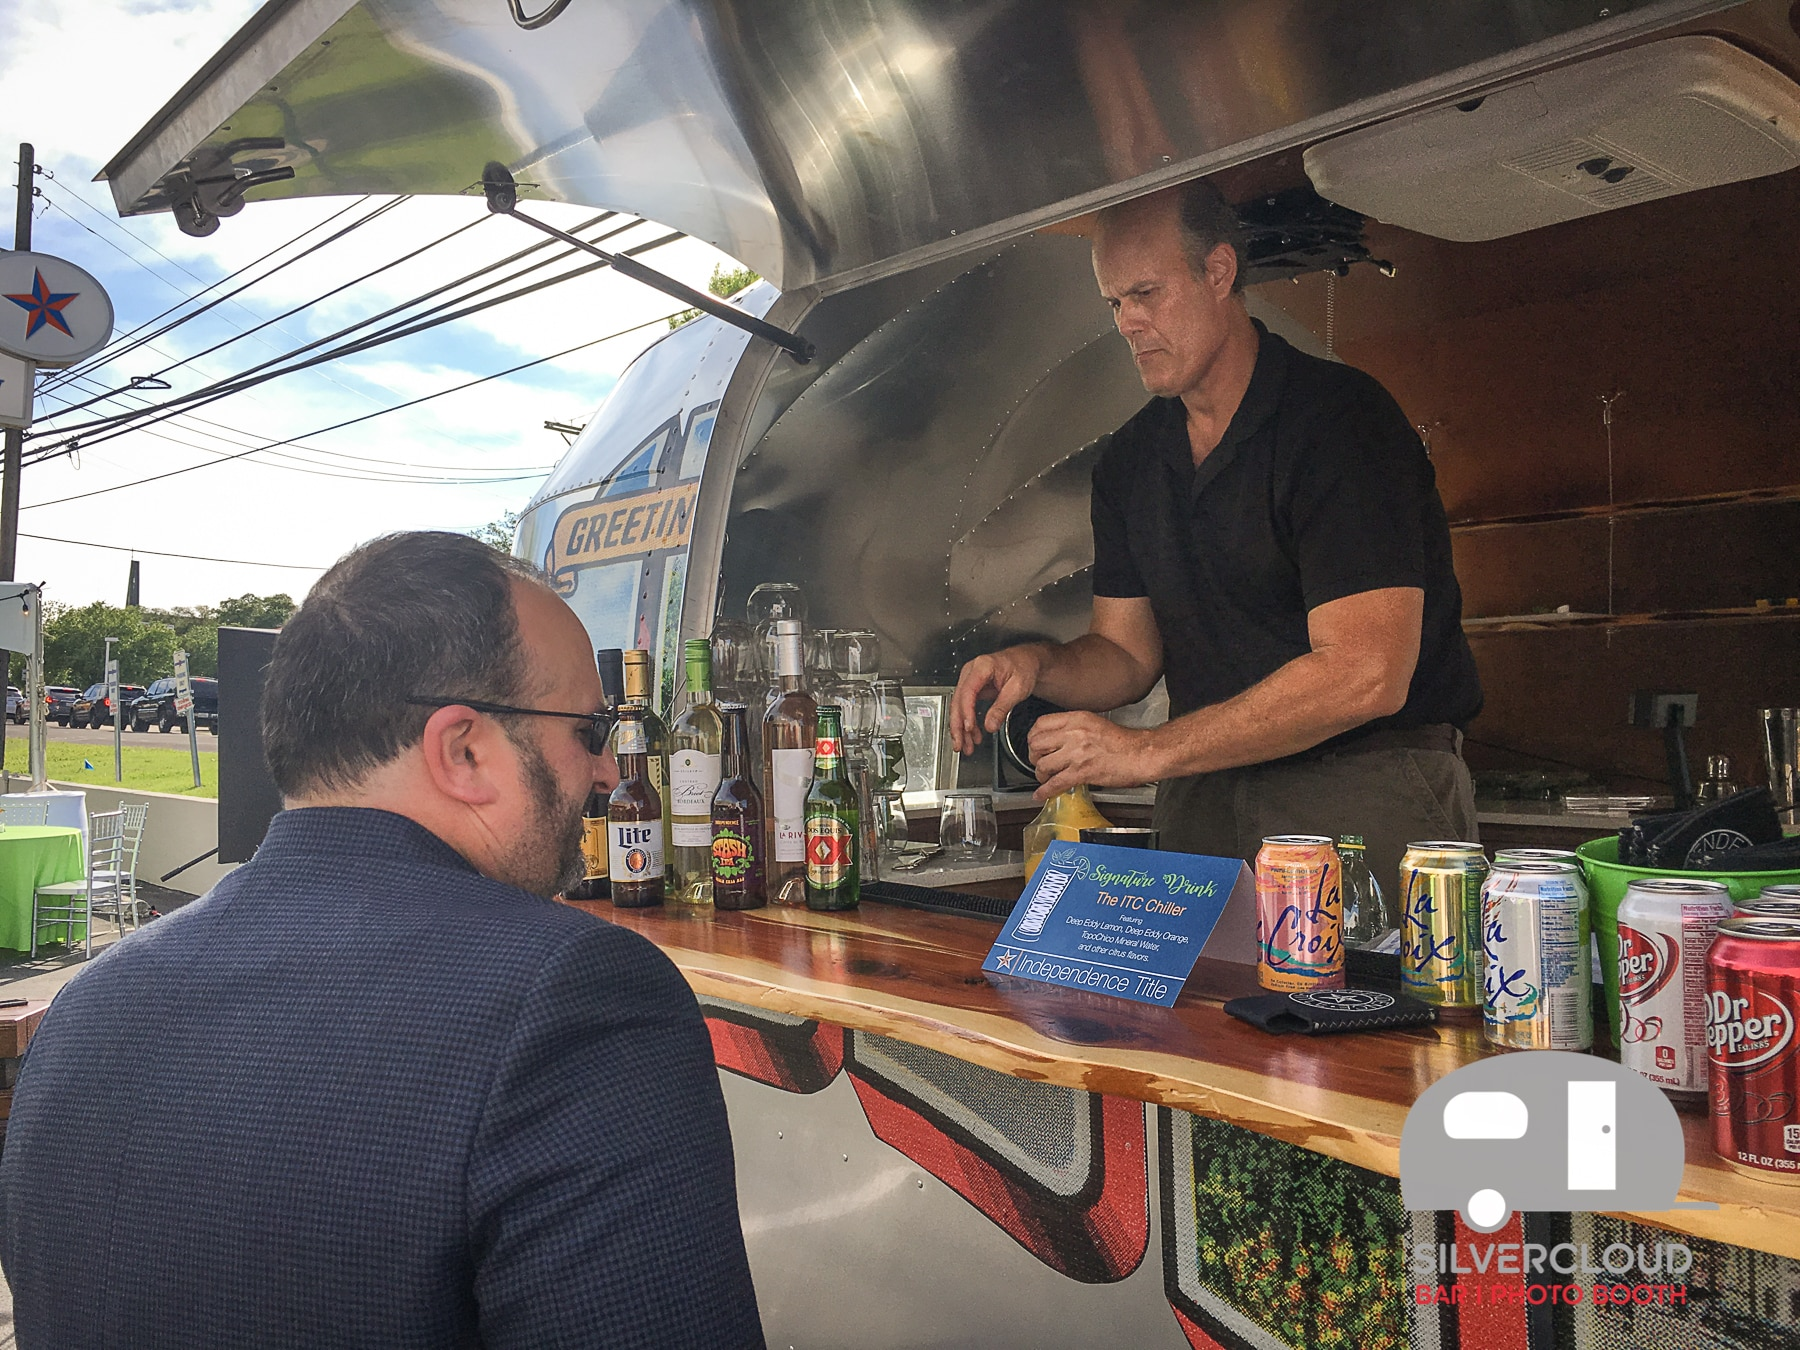 Silvercloud bartenders serving guests out of the Silvercloud Airstream Bar